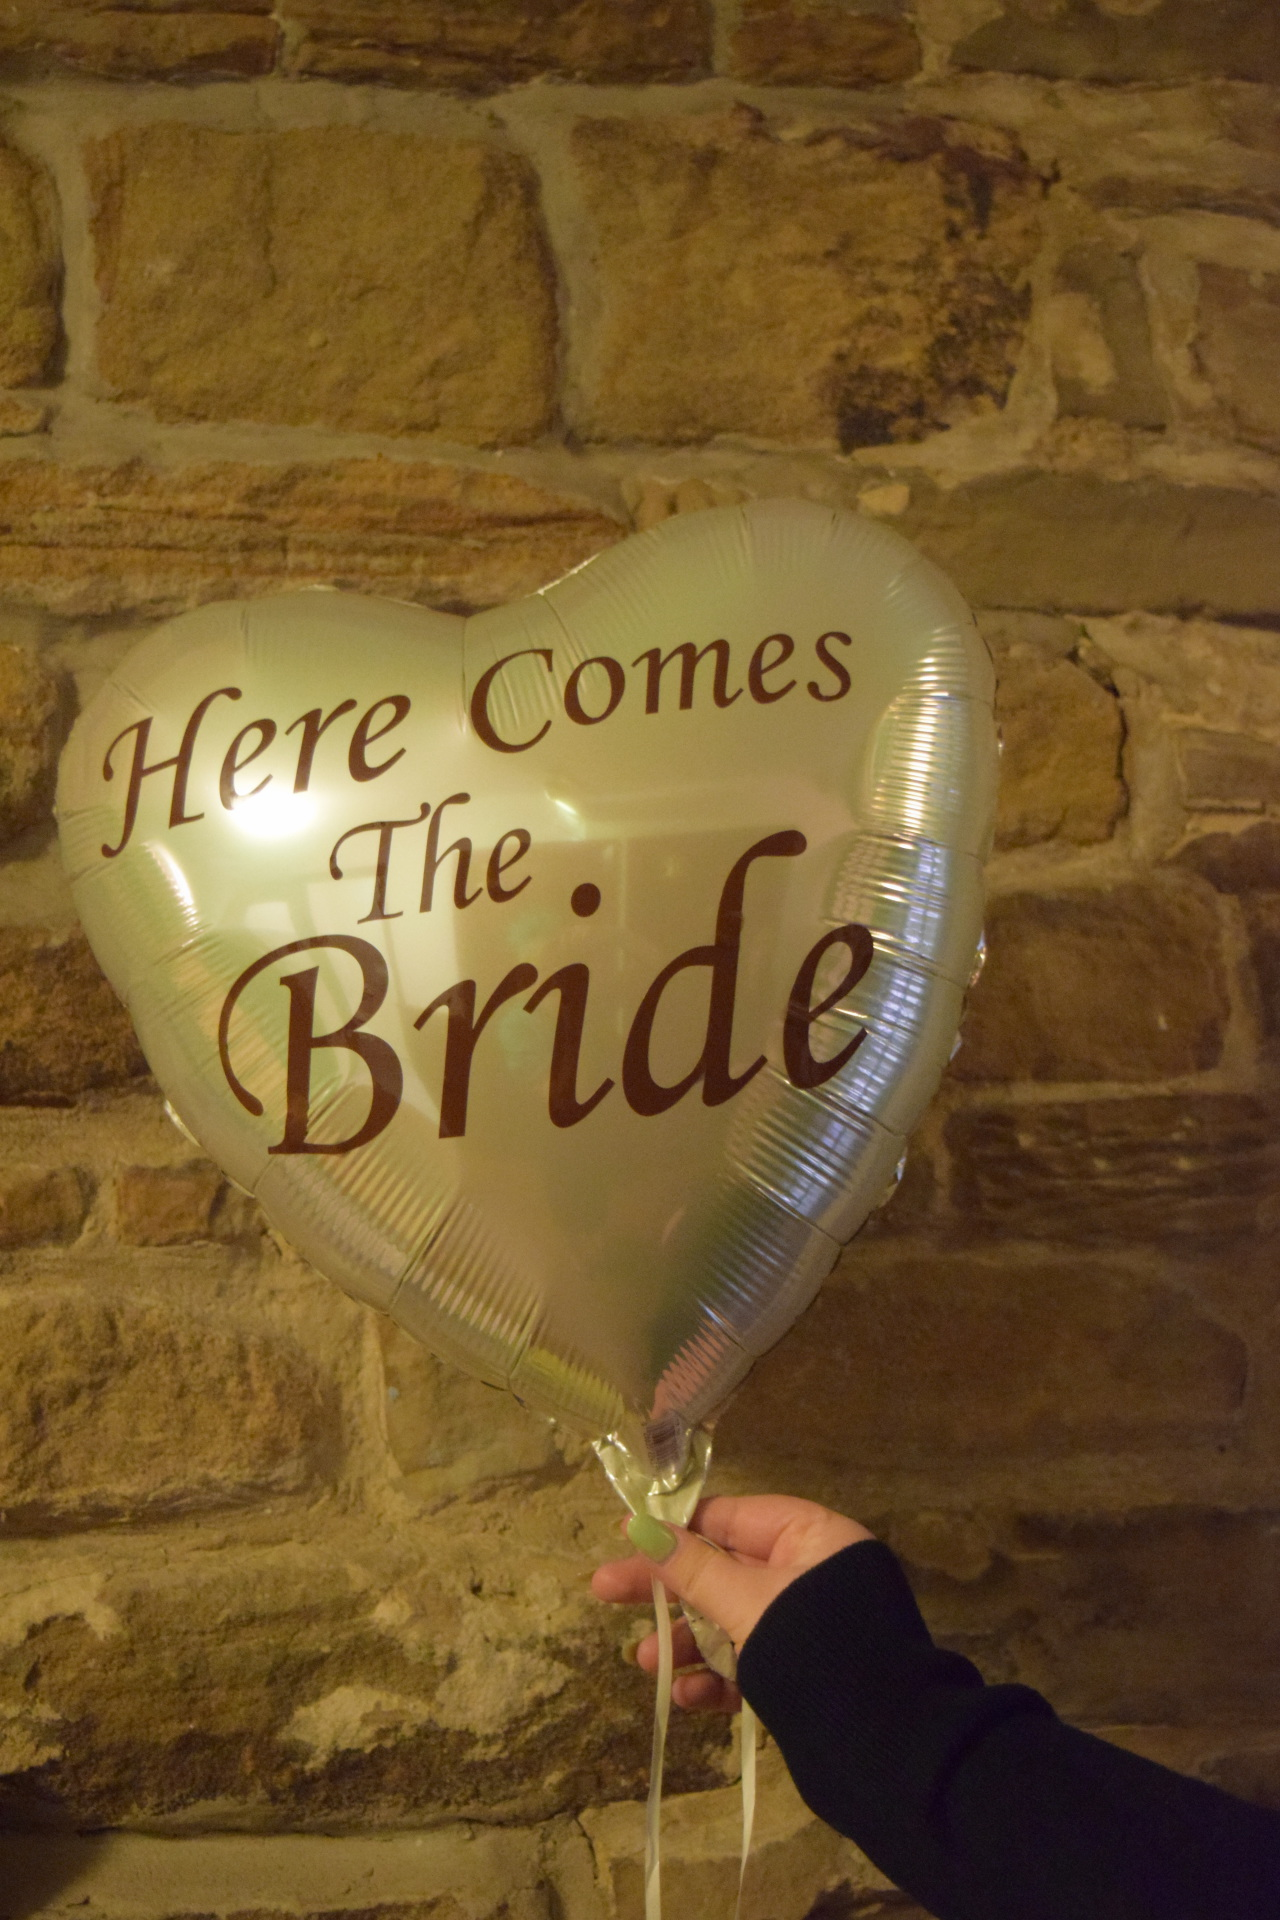 here comes the bride balloon foil